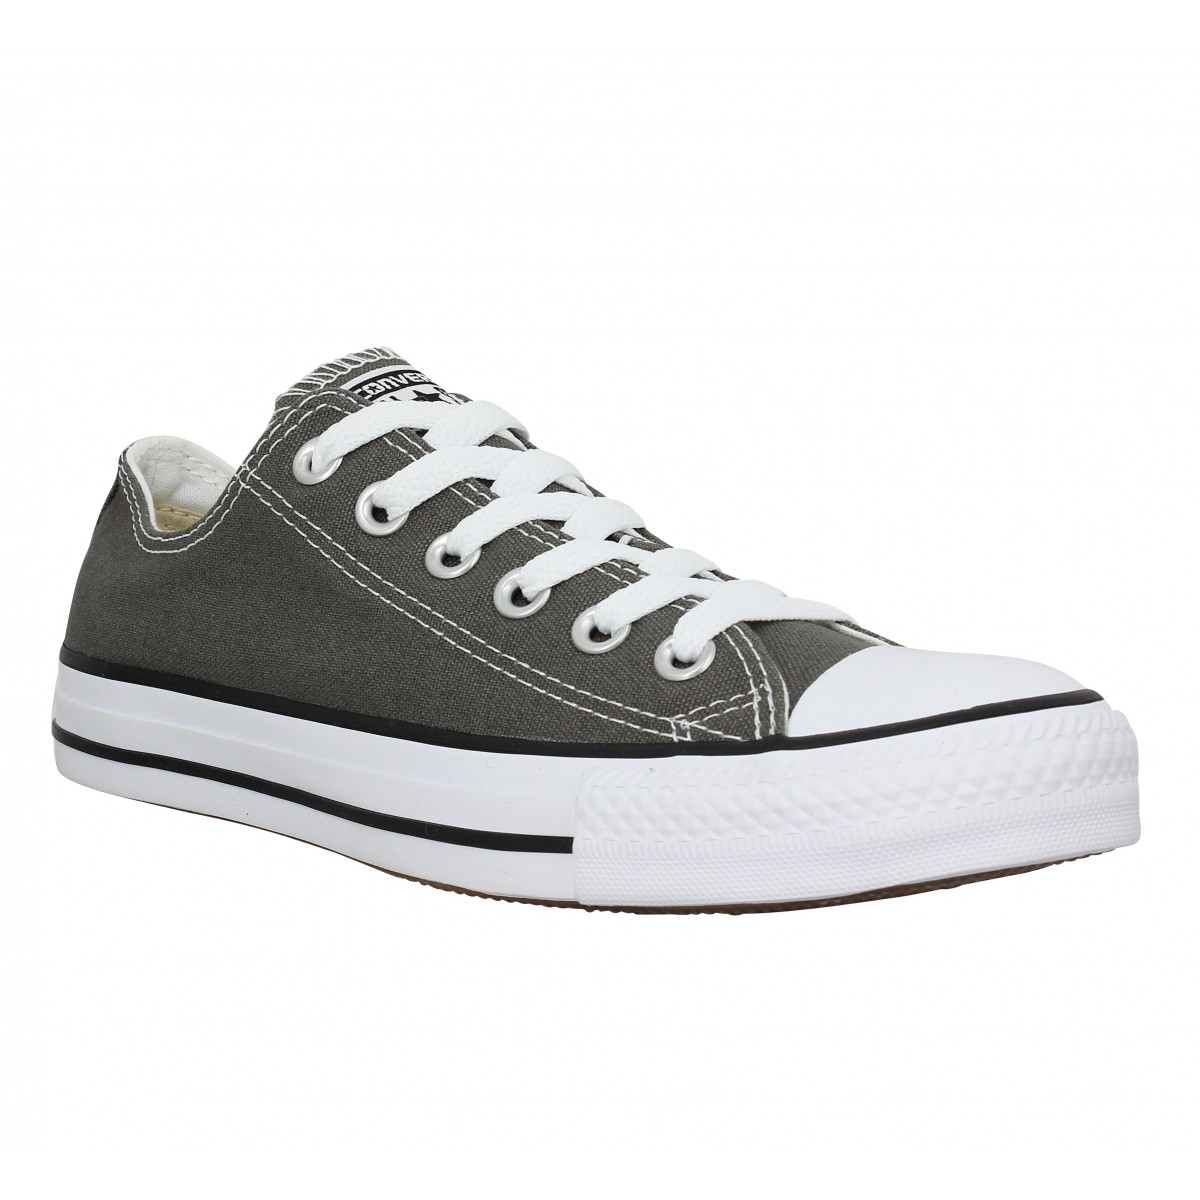 Baskets CONVERSE Chuck Taylor All Star toile Femme Anthracite